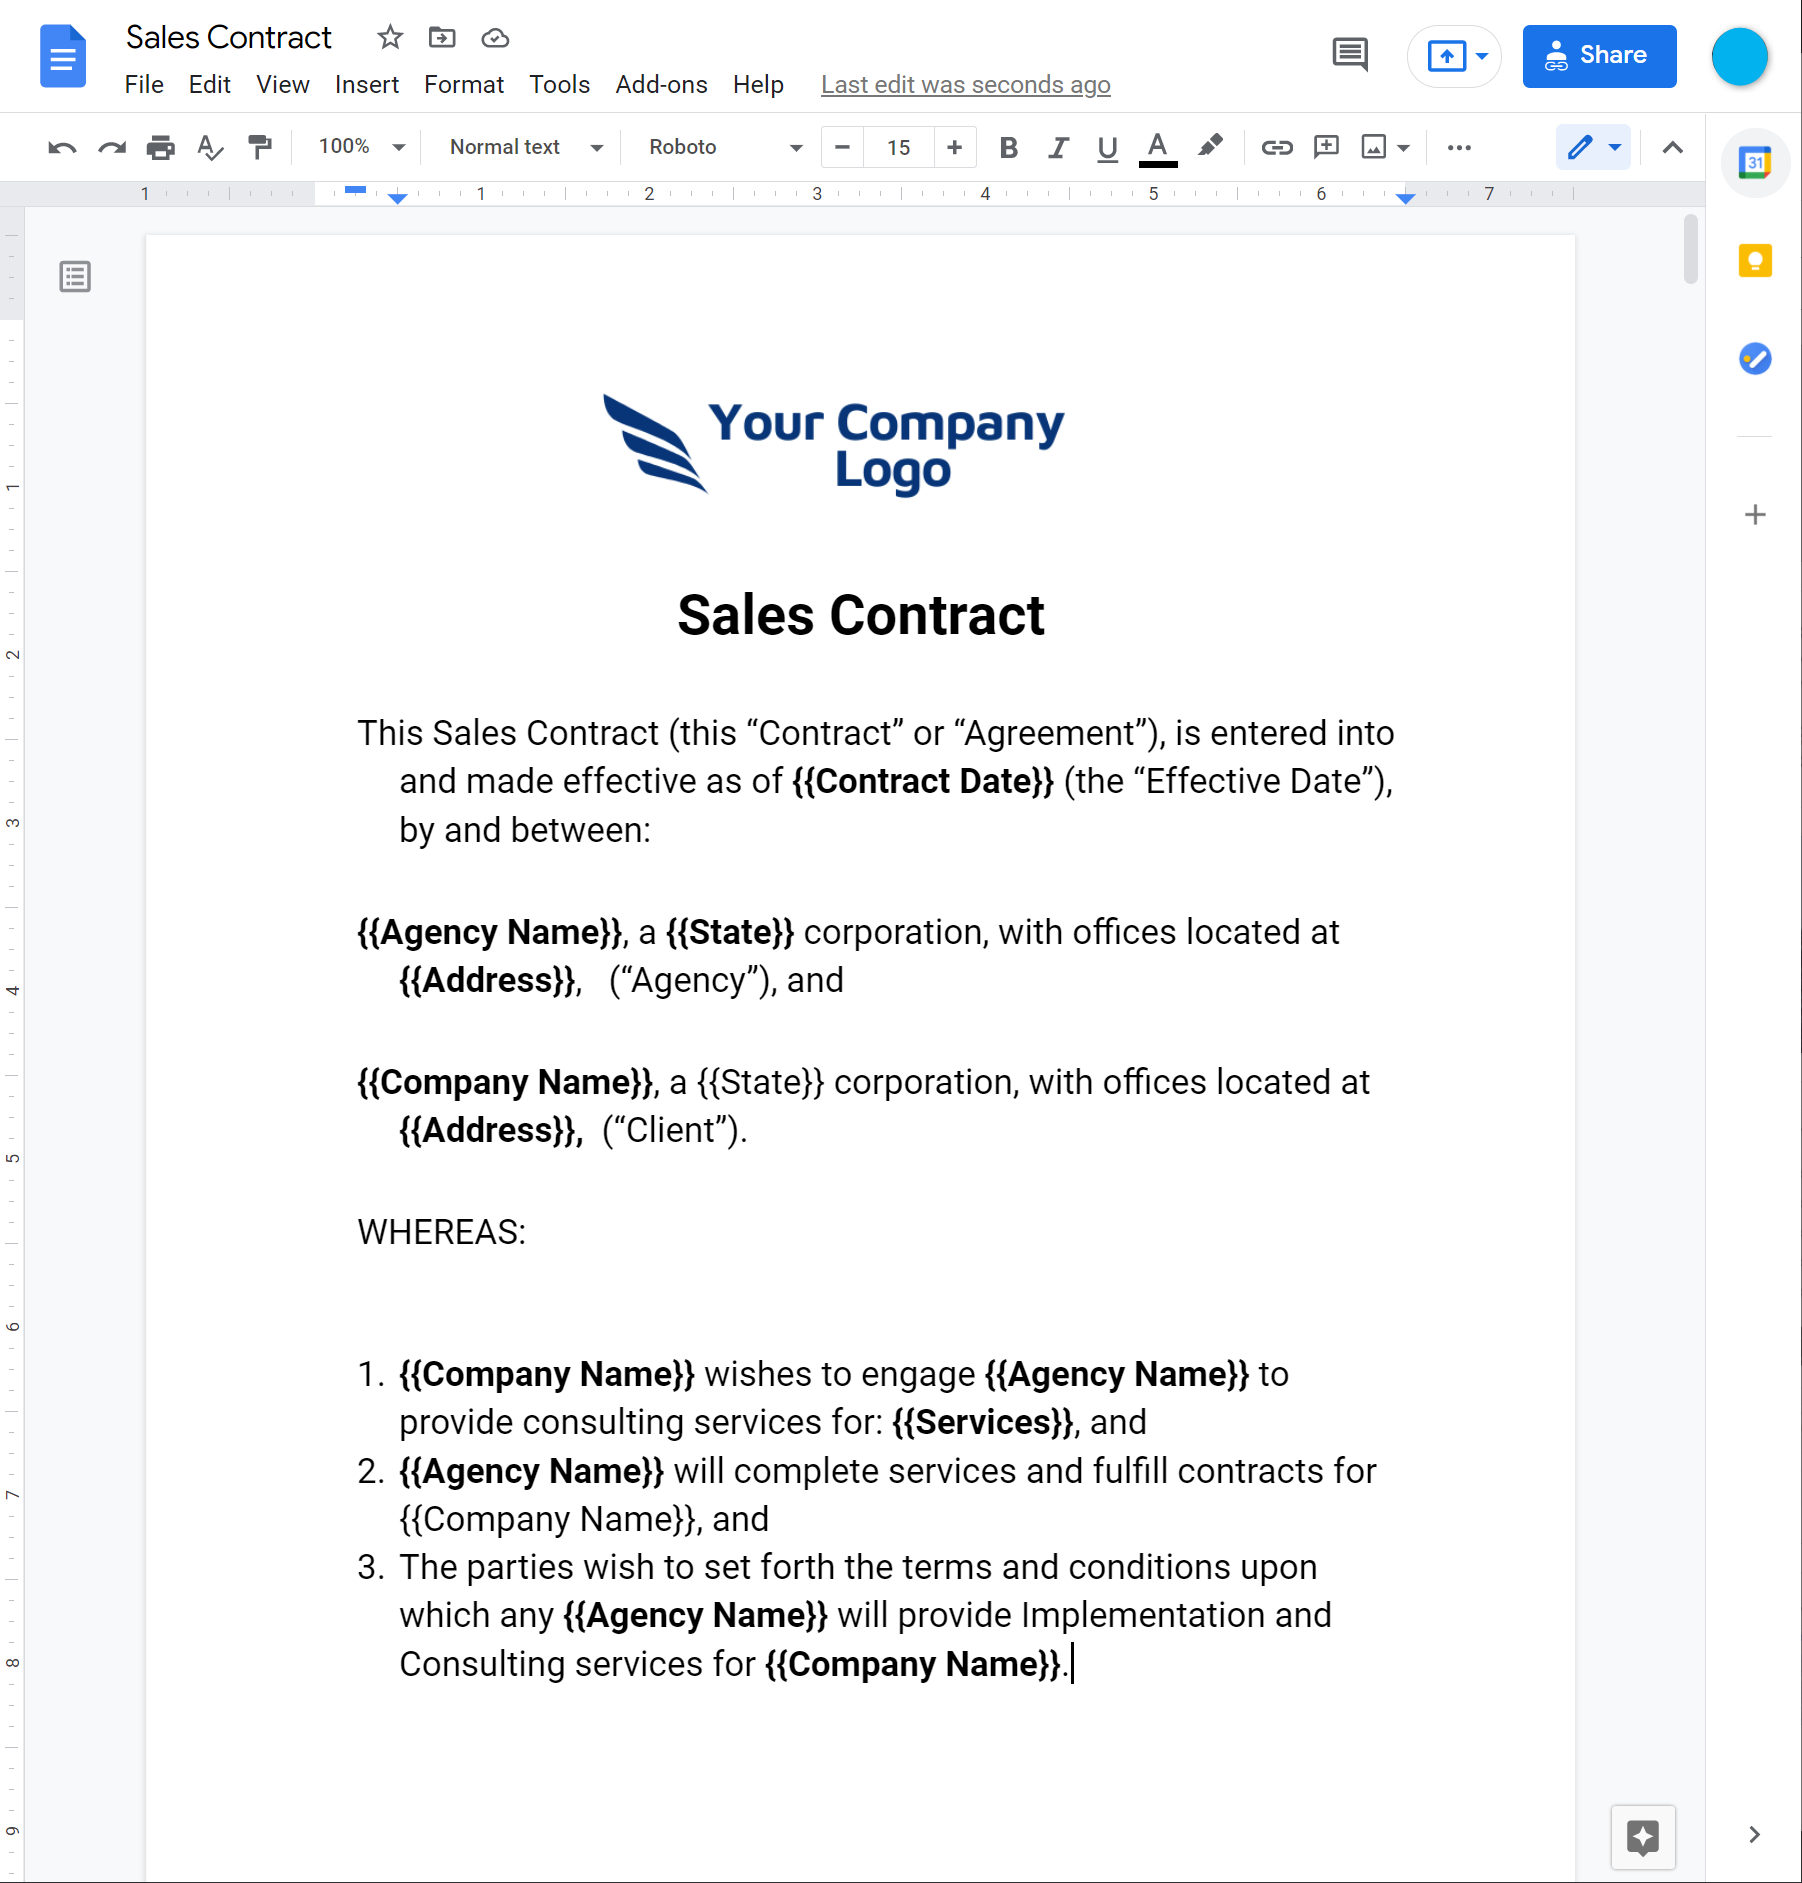 sales contract - templated version-screenshot